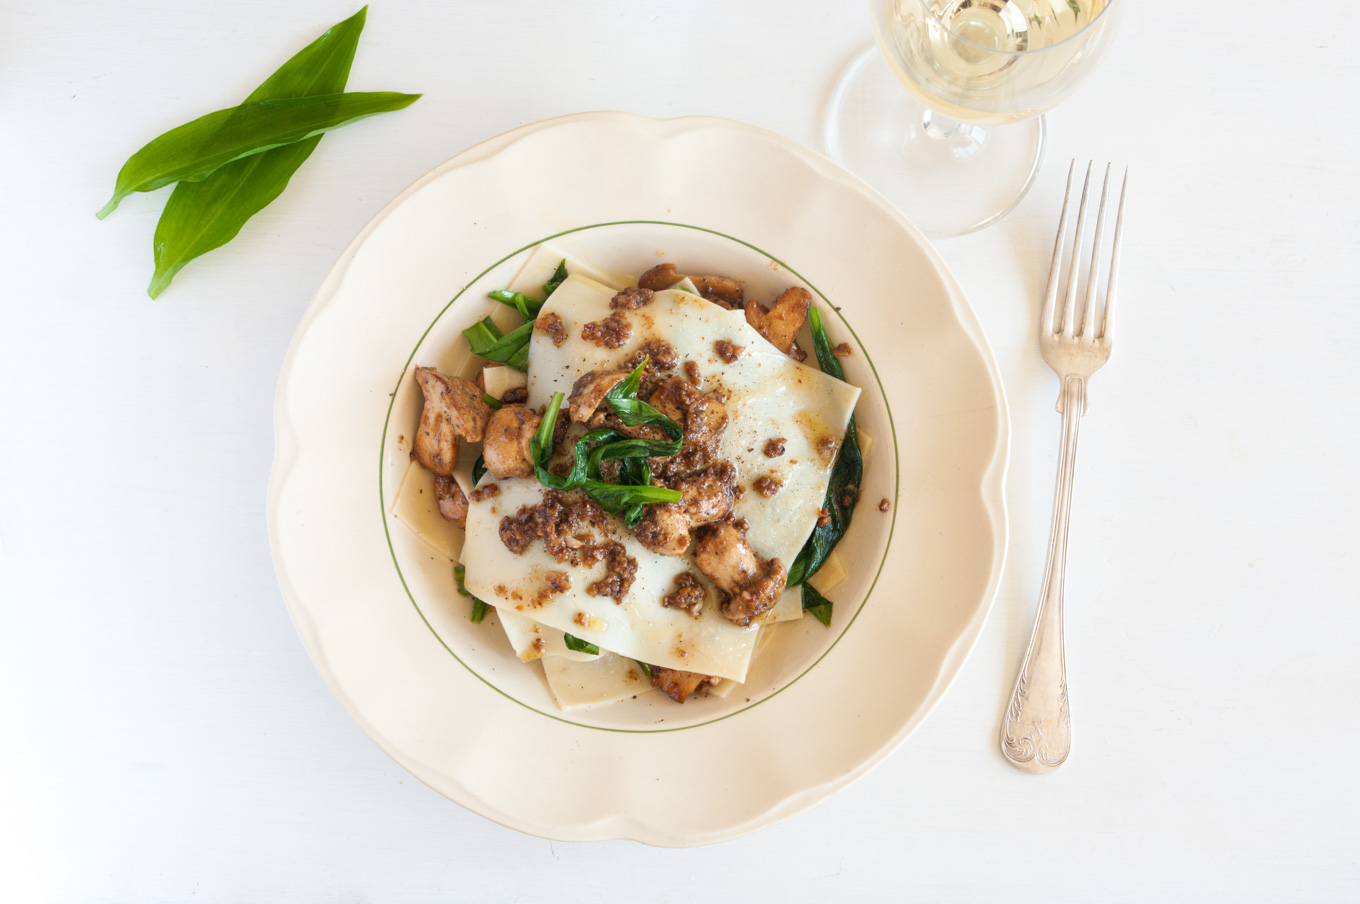 Spring Lasagne with Mushrooms and Wild Garlic – Wild mushrooms, sautéed with butter, caramelised garlic and cream, layered with handmade pasta and wilted wild garlic. Elegant vegetarian main course. By @deliciouscratch | deliciousfromscratch.com